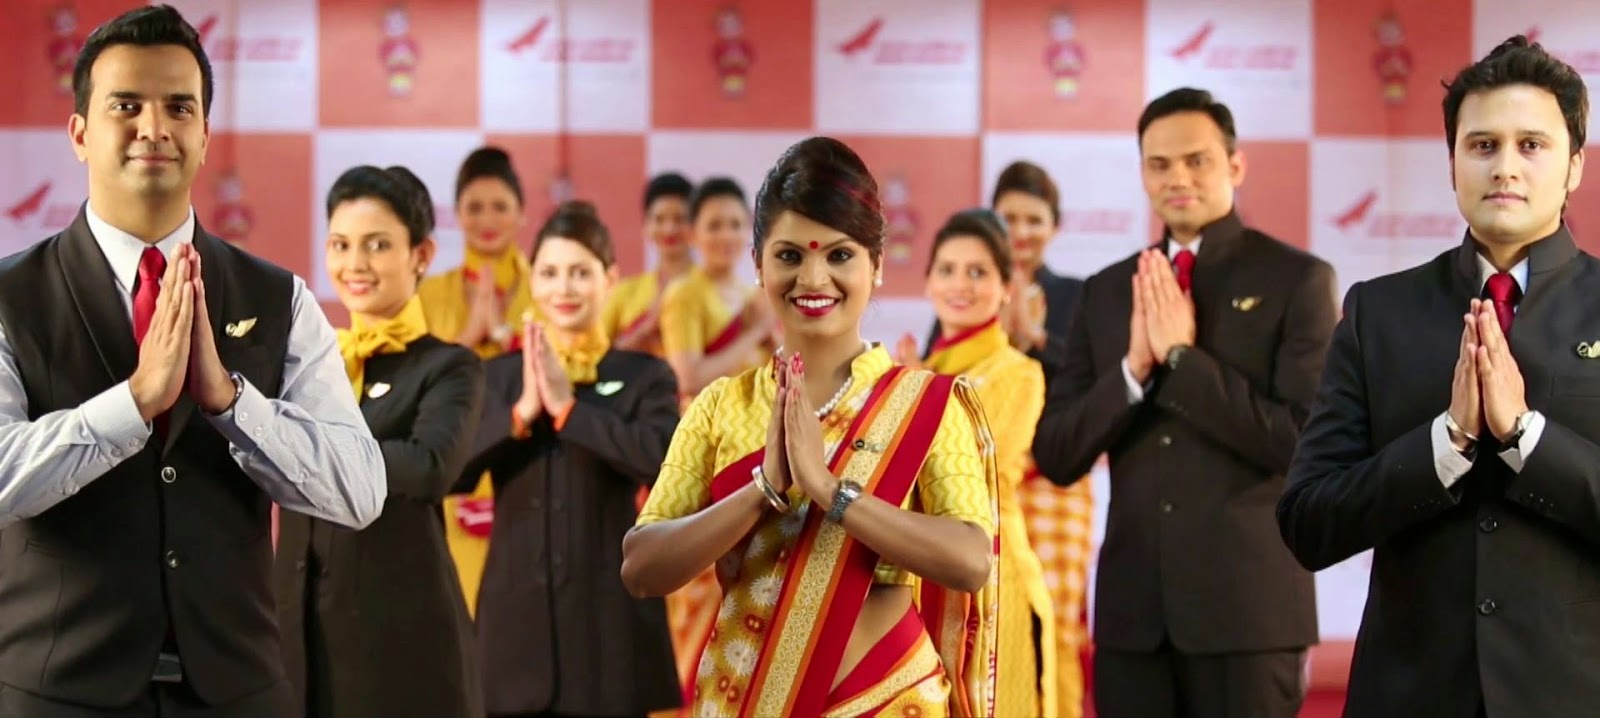 Air India, Air India recruitment 2018, Education news, Career news, Jobs, Business news